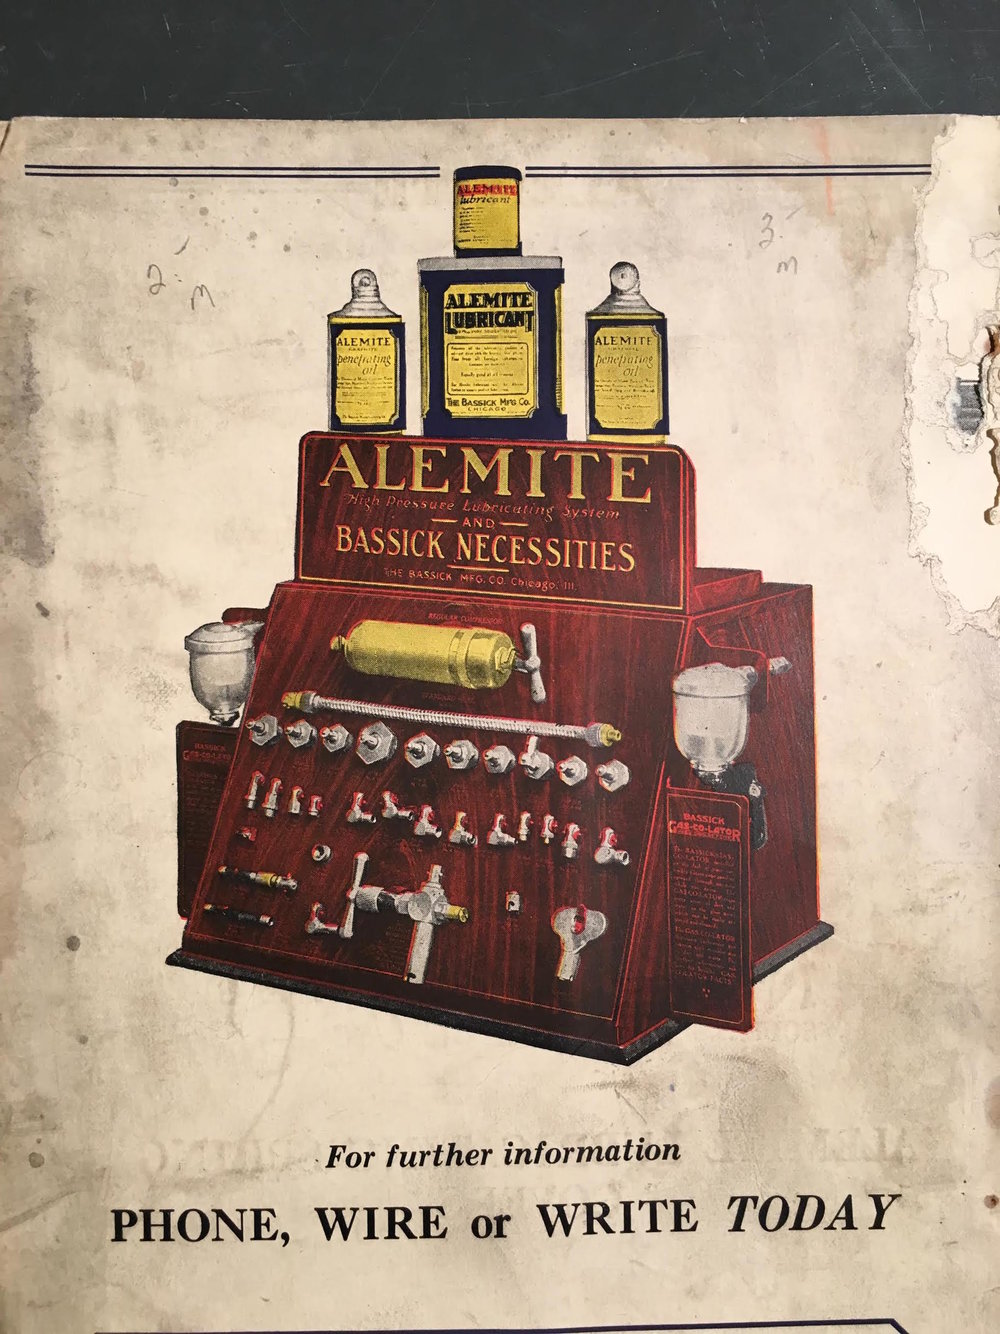 Alemite 1930's display